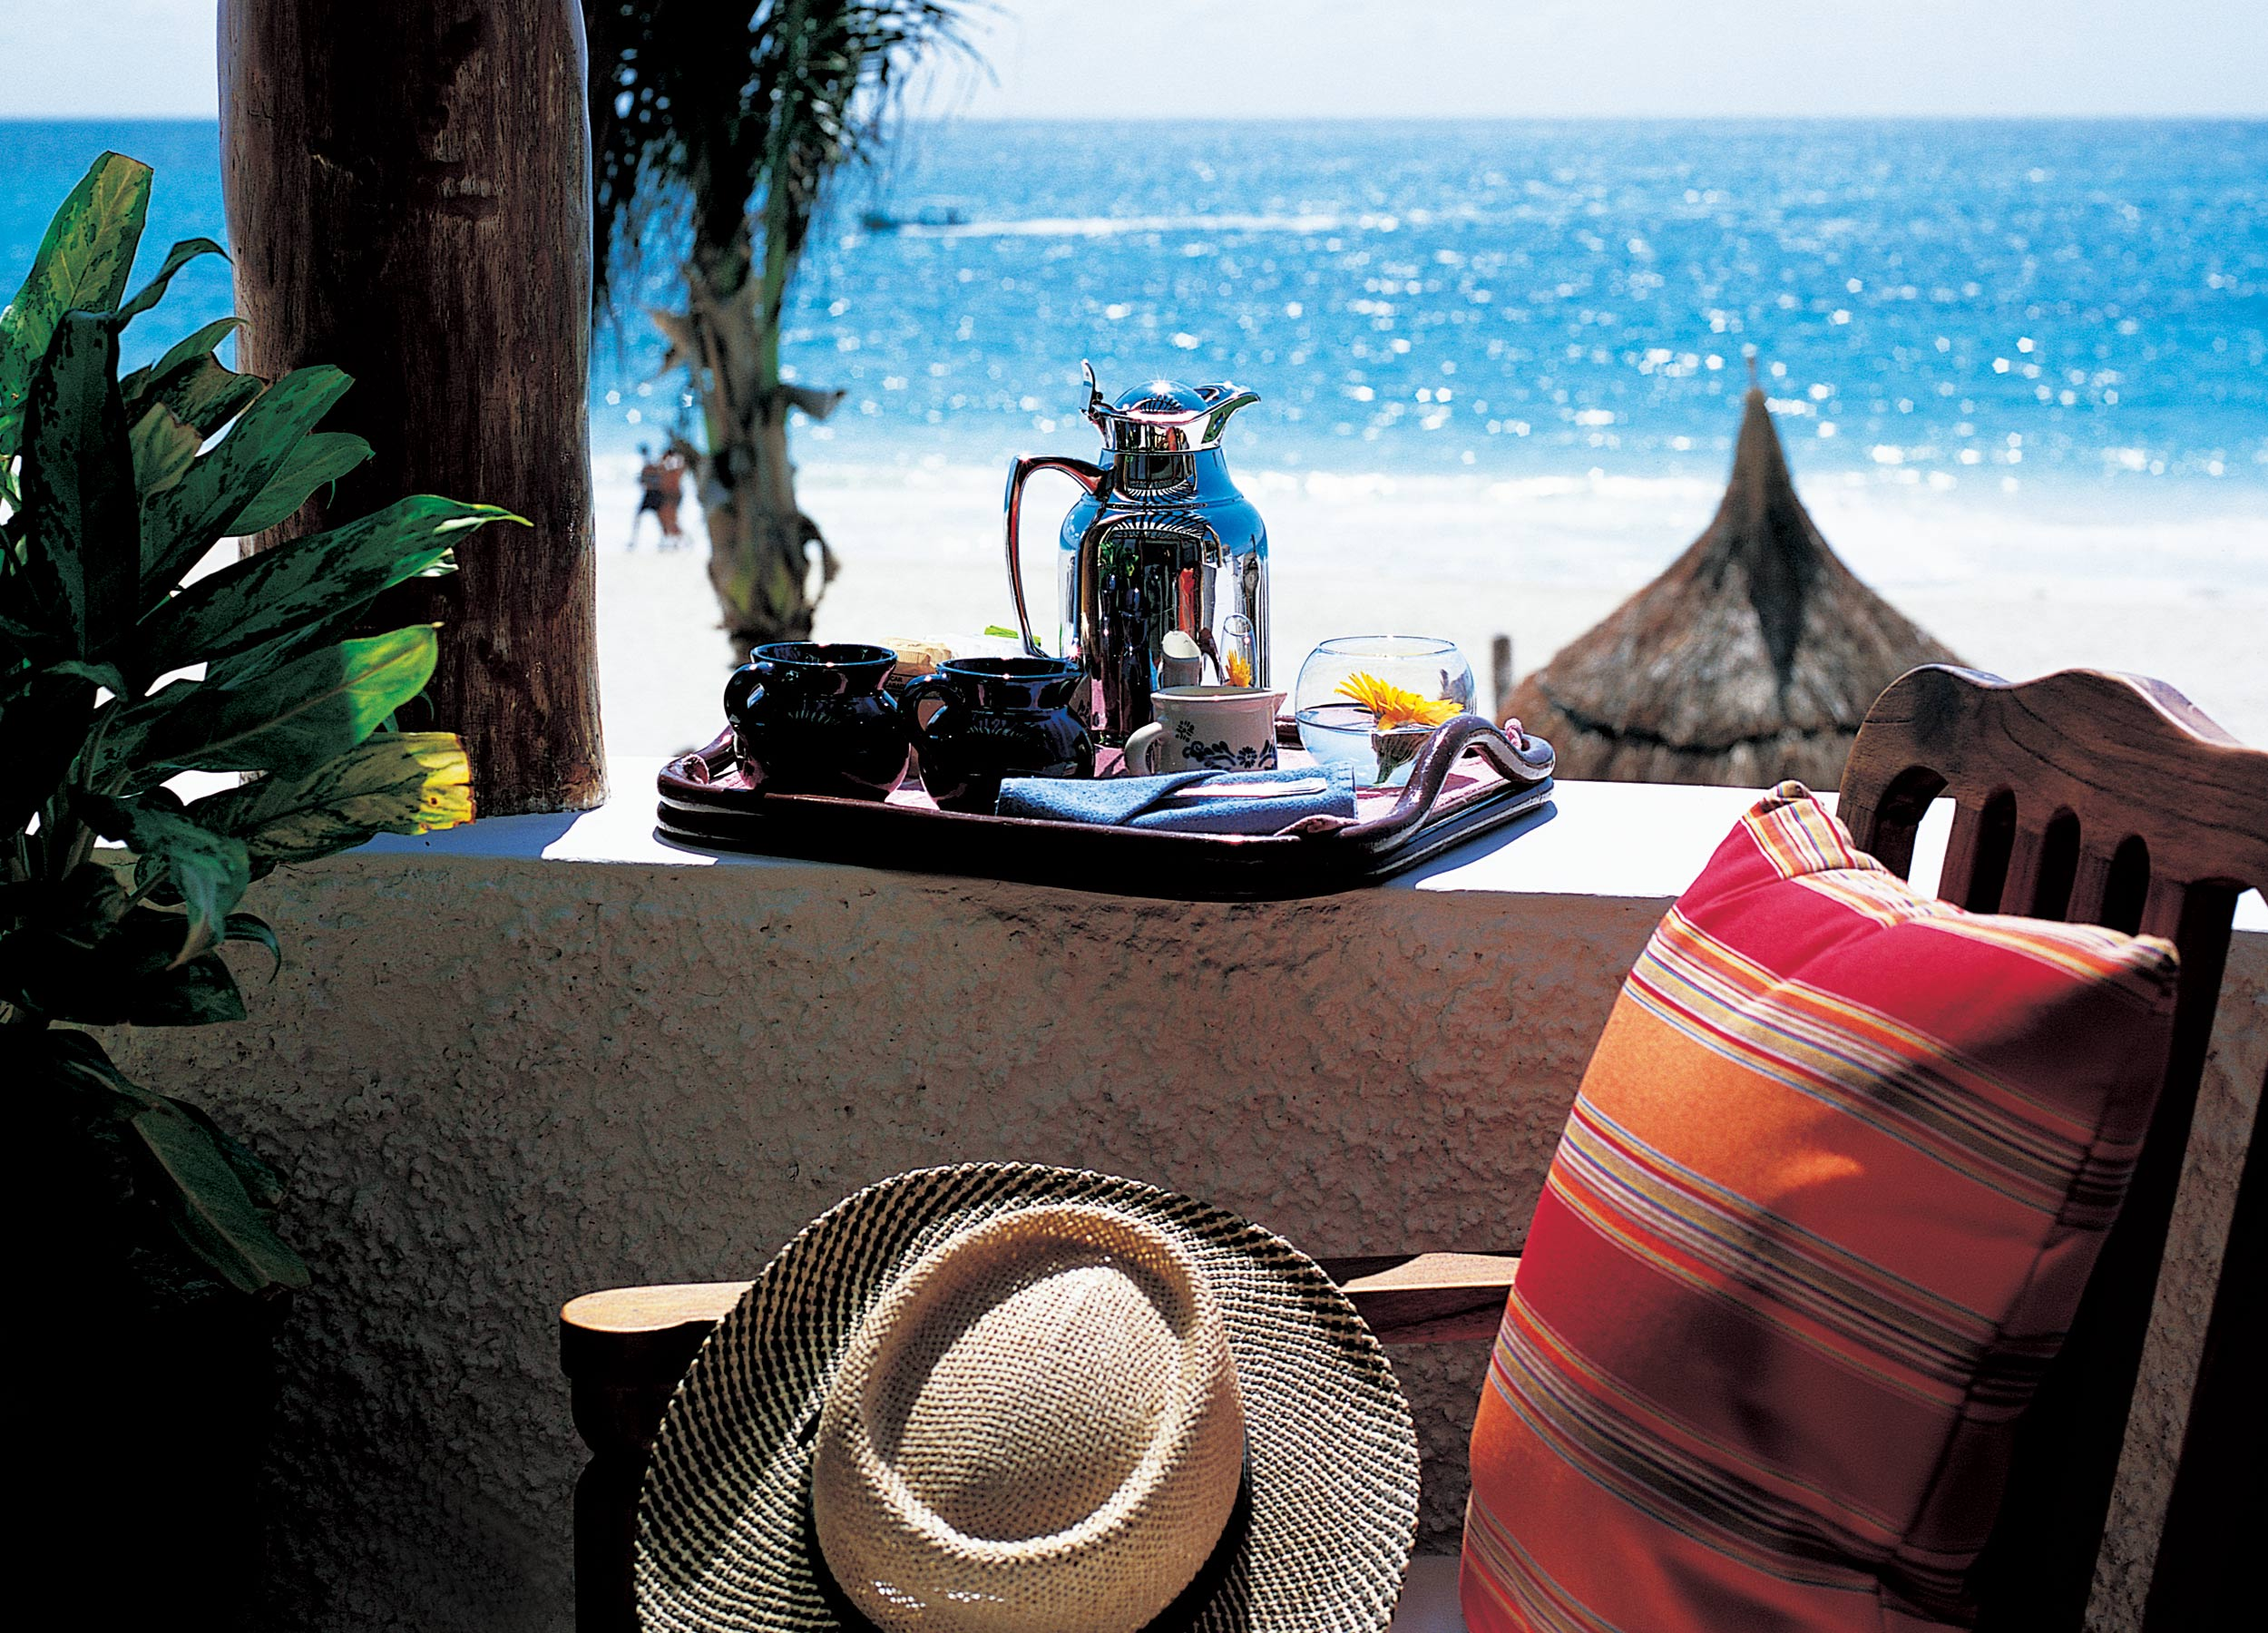 A straw hat on a cushioned chair with a tea service tray on the wall overlooking the sea